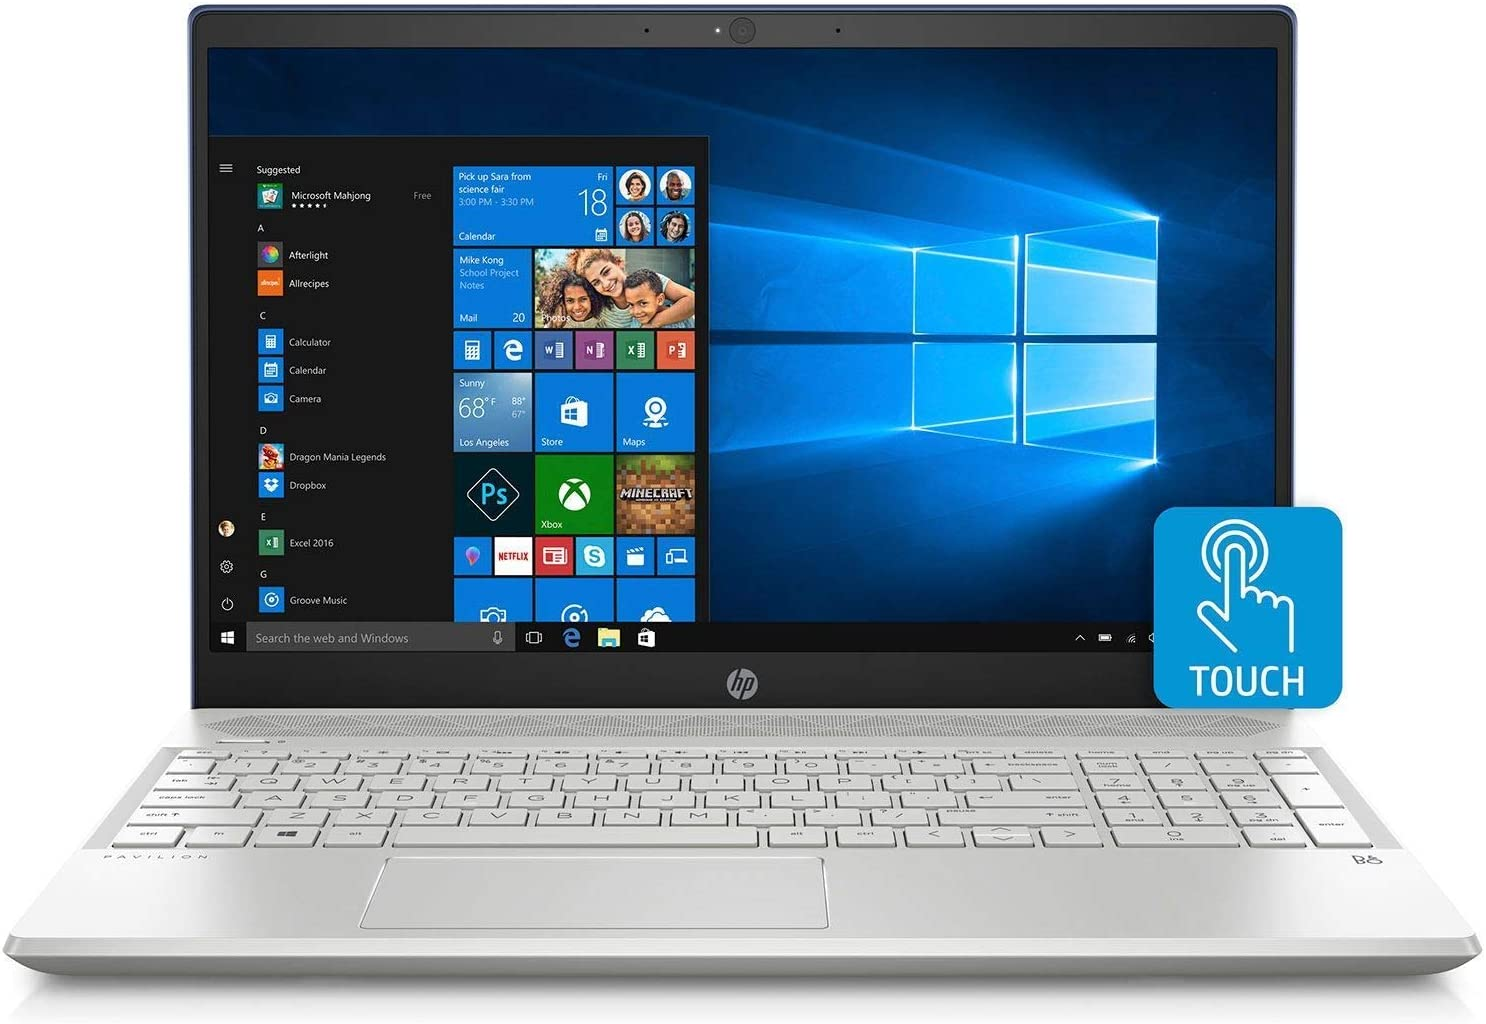 "HP Pavilion 15.6"" FHD IPS Touchscreen Premium Laptop, Intel Quad Core i7-8550U Processor up to 4.0 GHz, 32GB Memory, 2TB HDD, Backlit Keyboard, USB-C, B&O Play, WiFi, HDMI, Windows 10"